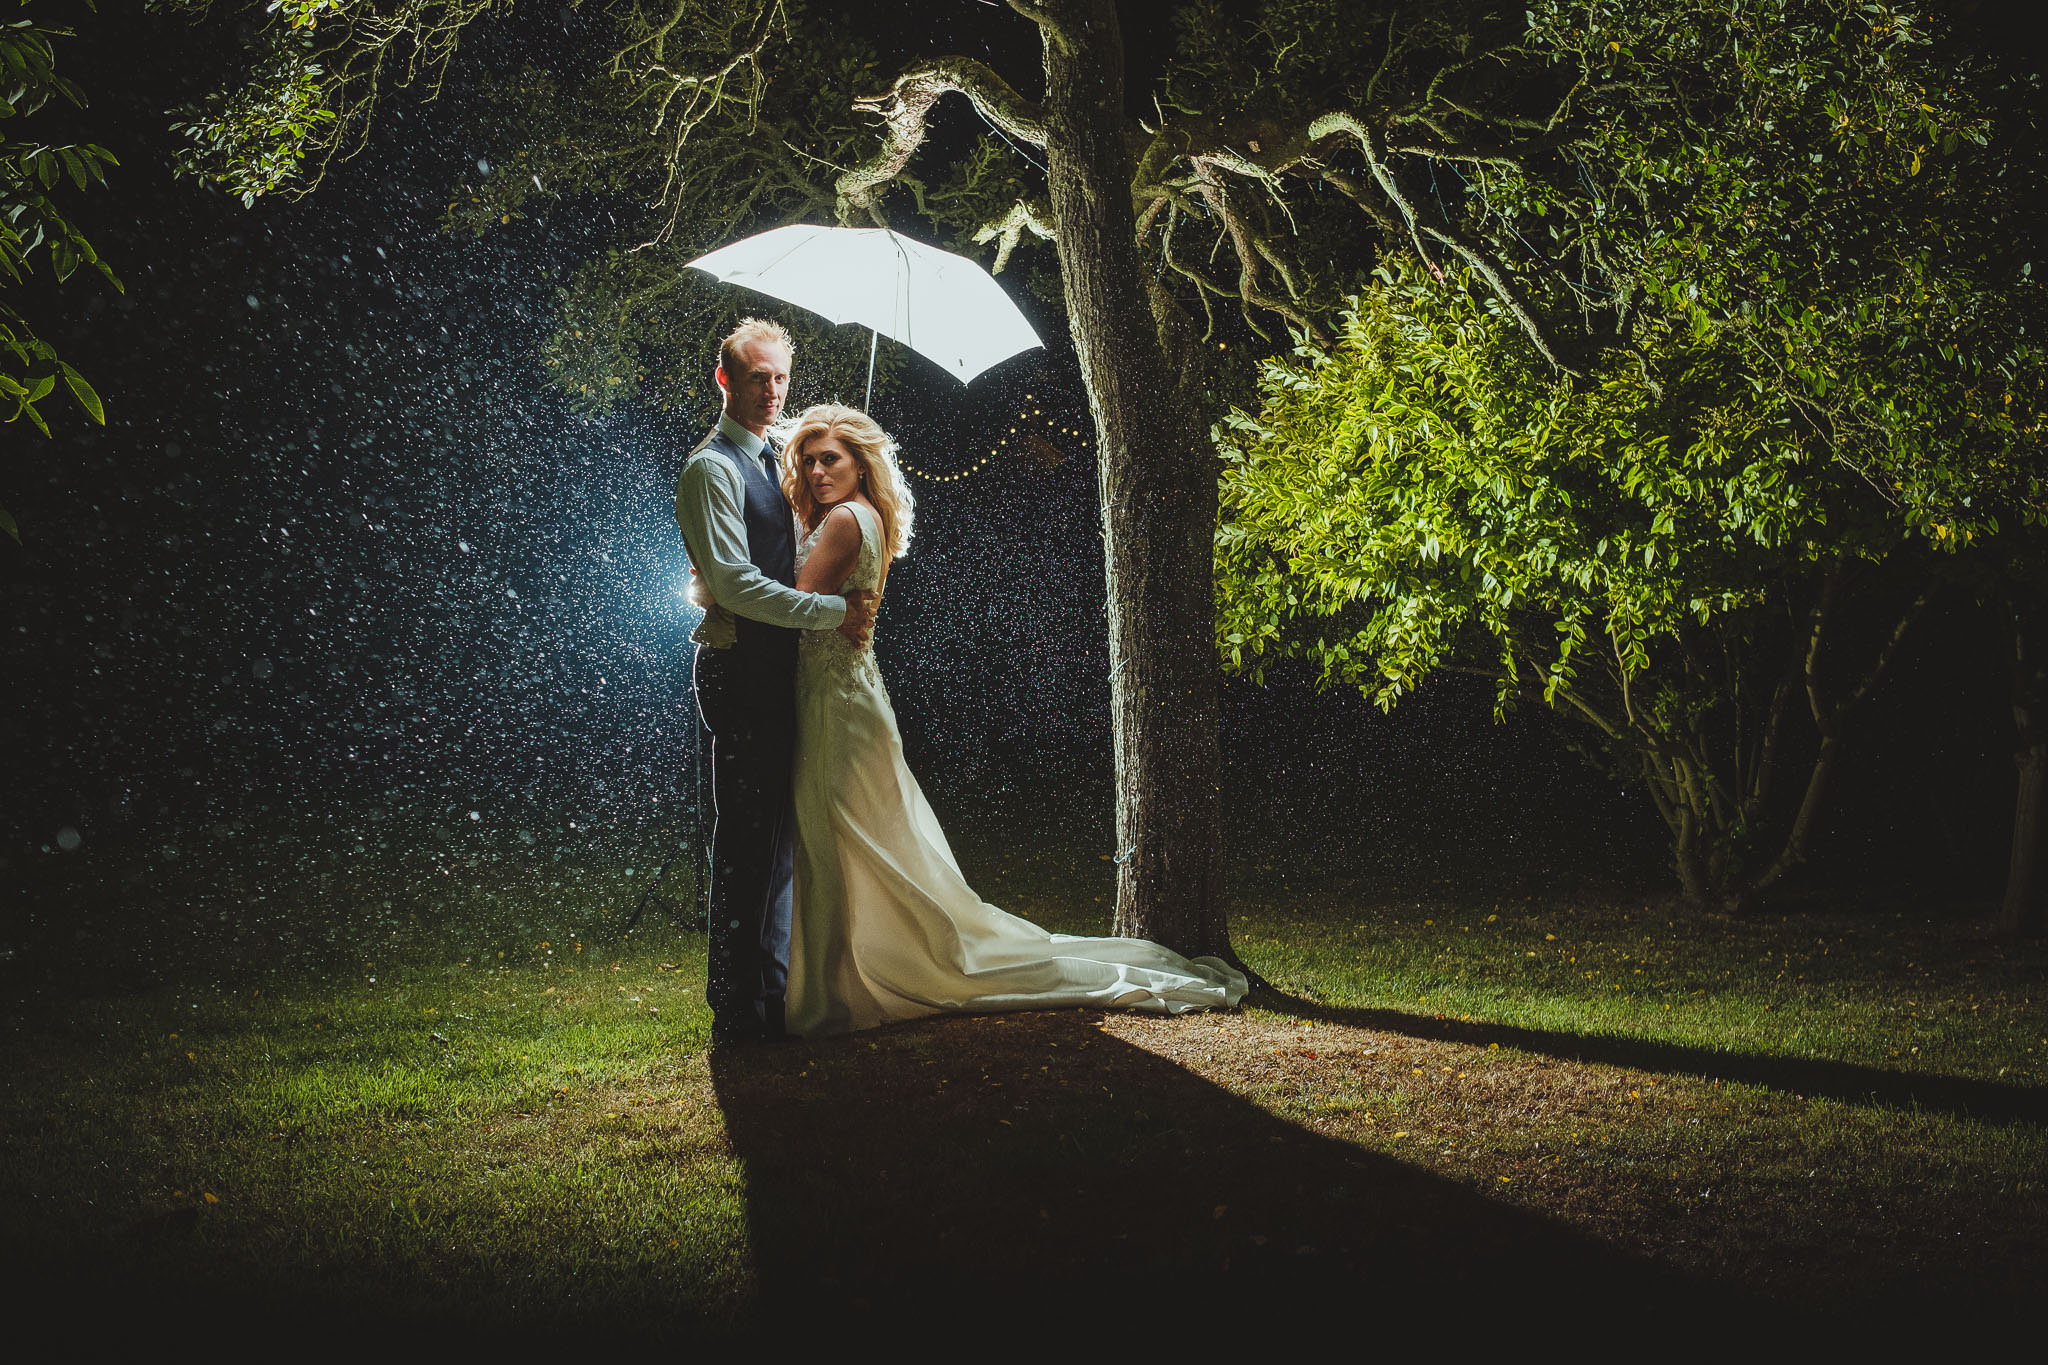 The bride and groom hug under an umbrella in the rain